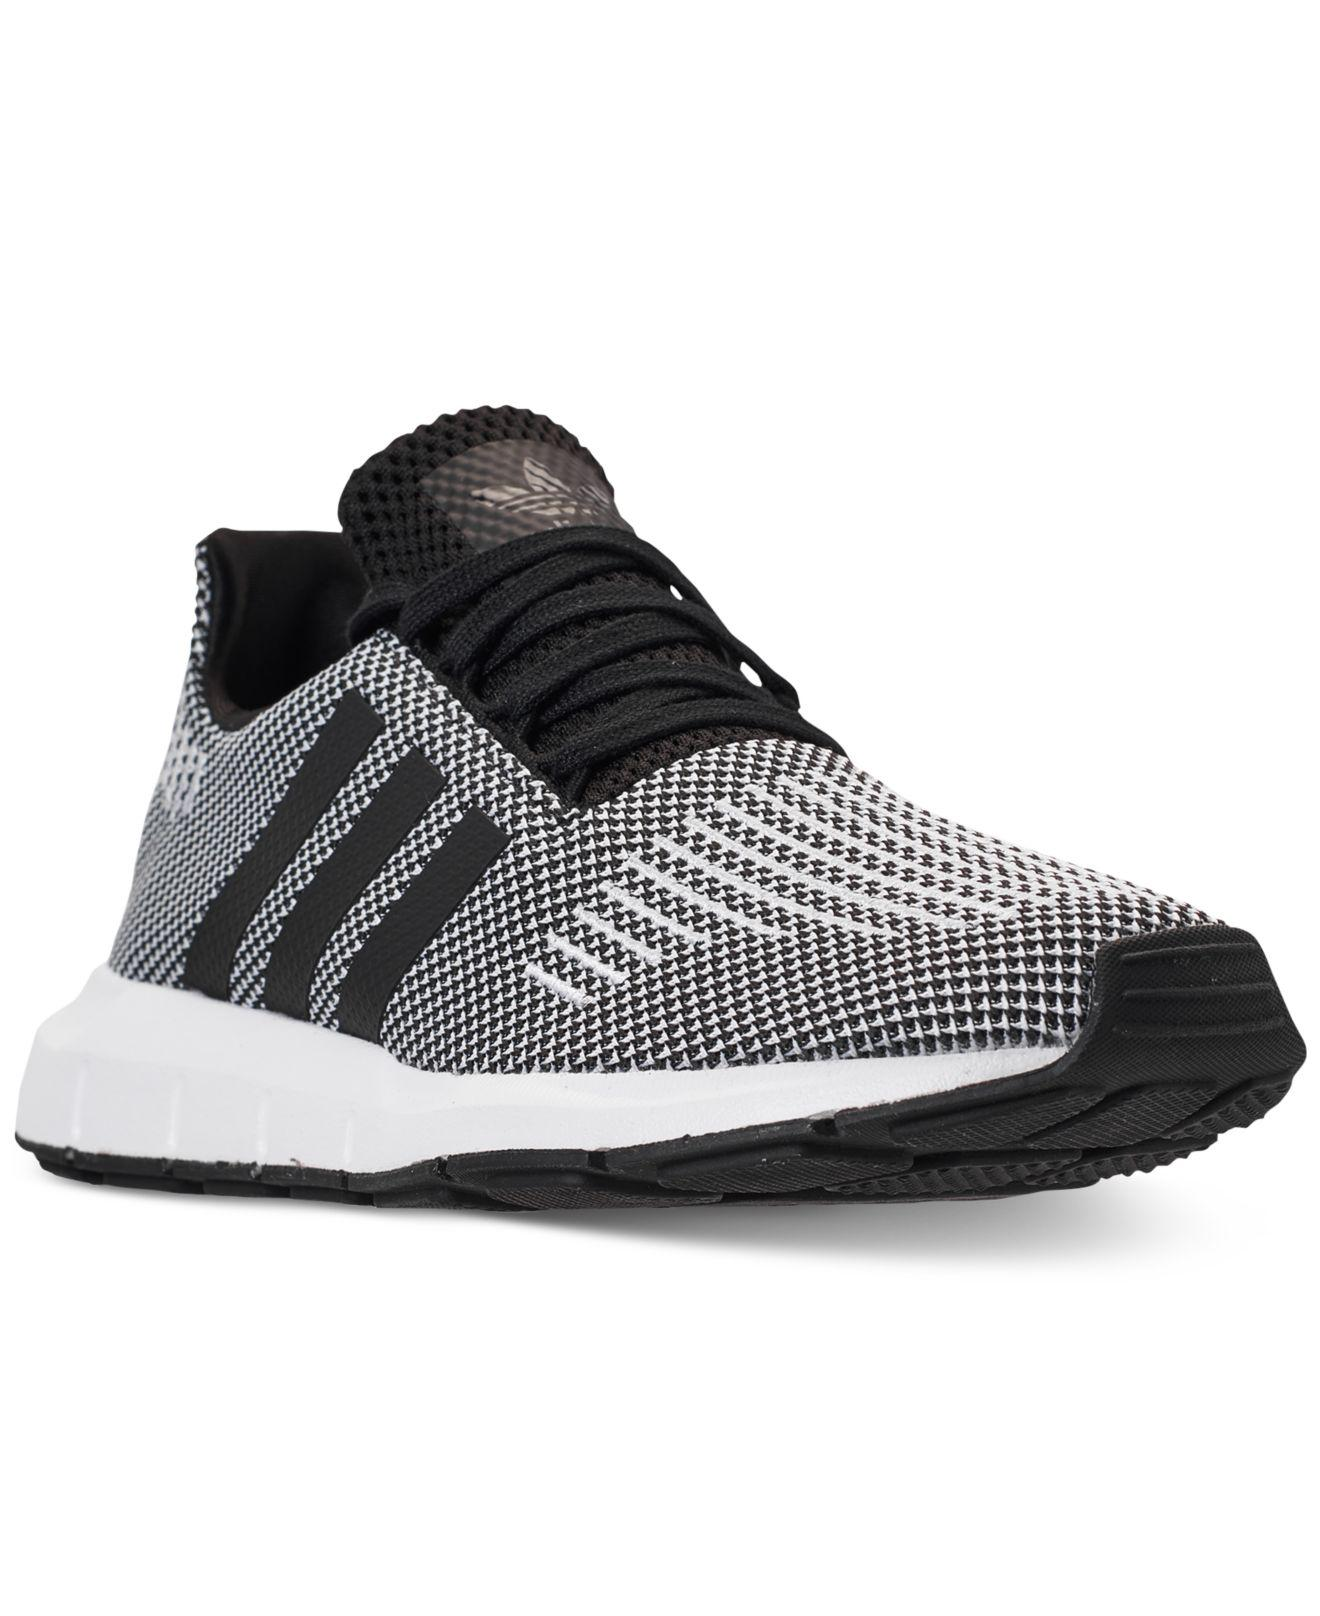 Lyst - adidas Swift Run Casual Sneakers From Finish Line in Black ... 607f4decf